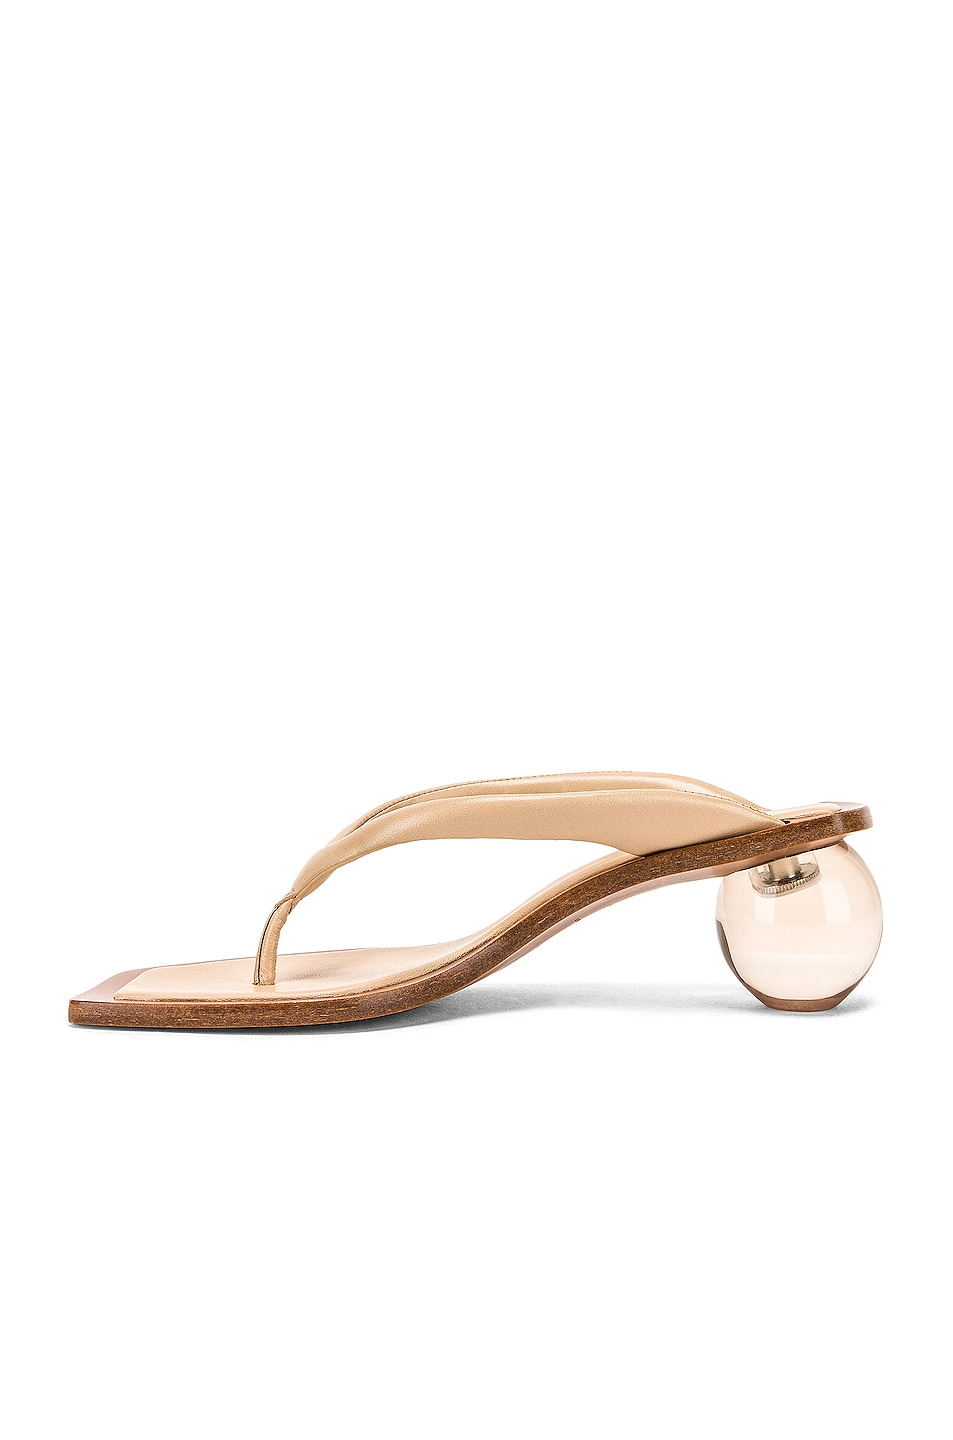 Image 5 of Cult Gaia Jasmin Sandal in Sand